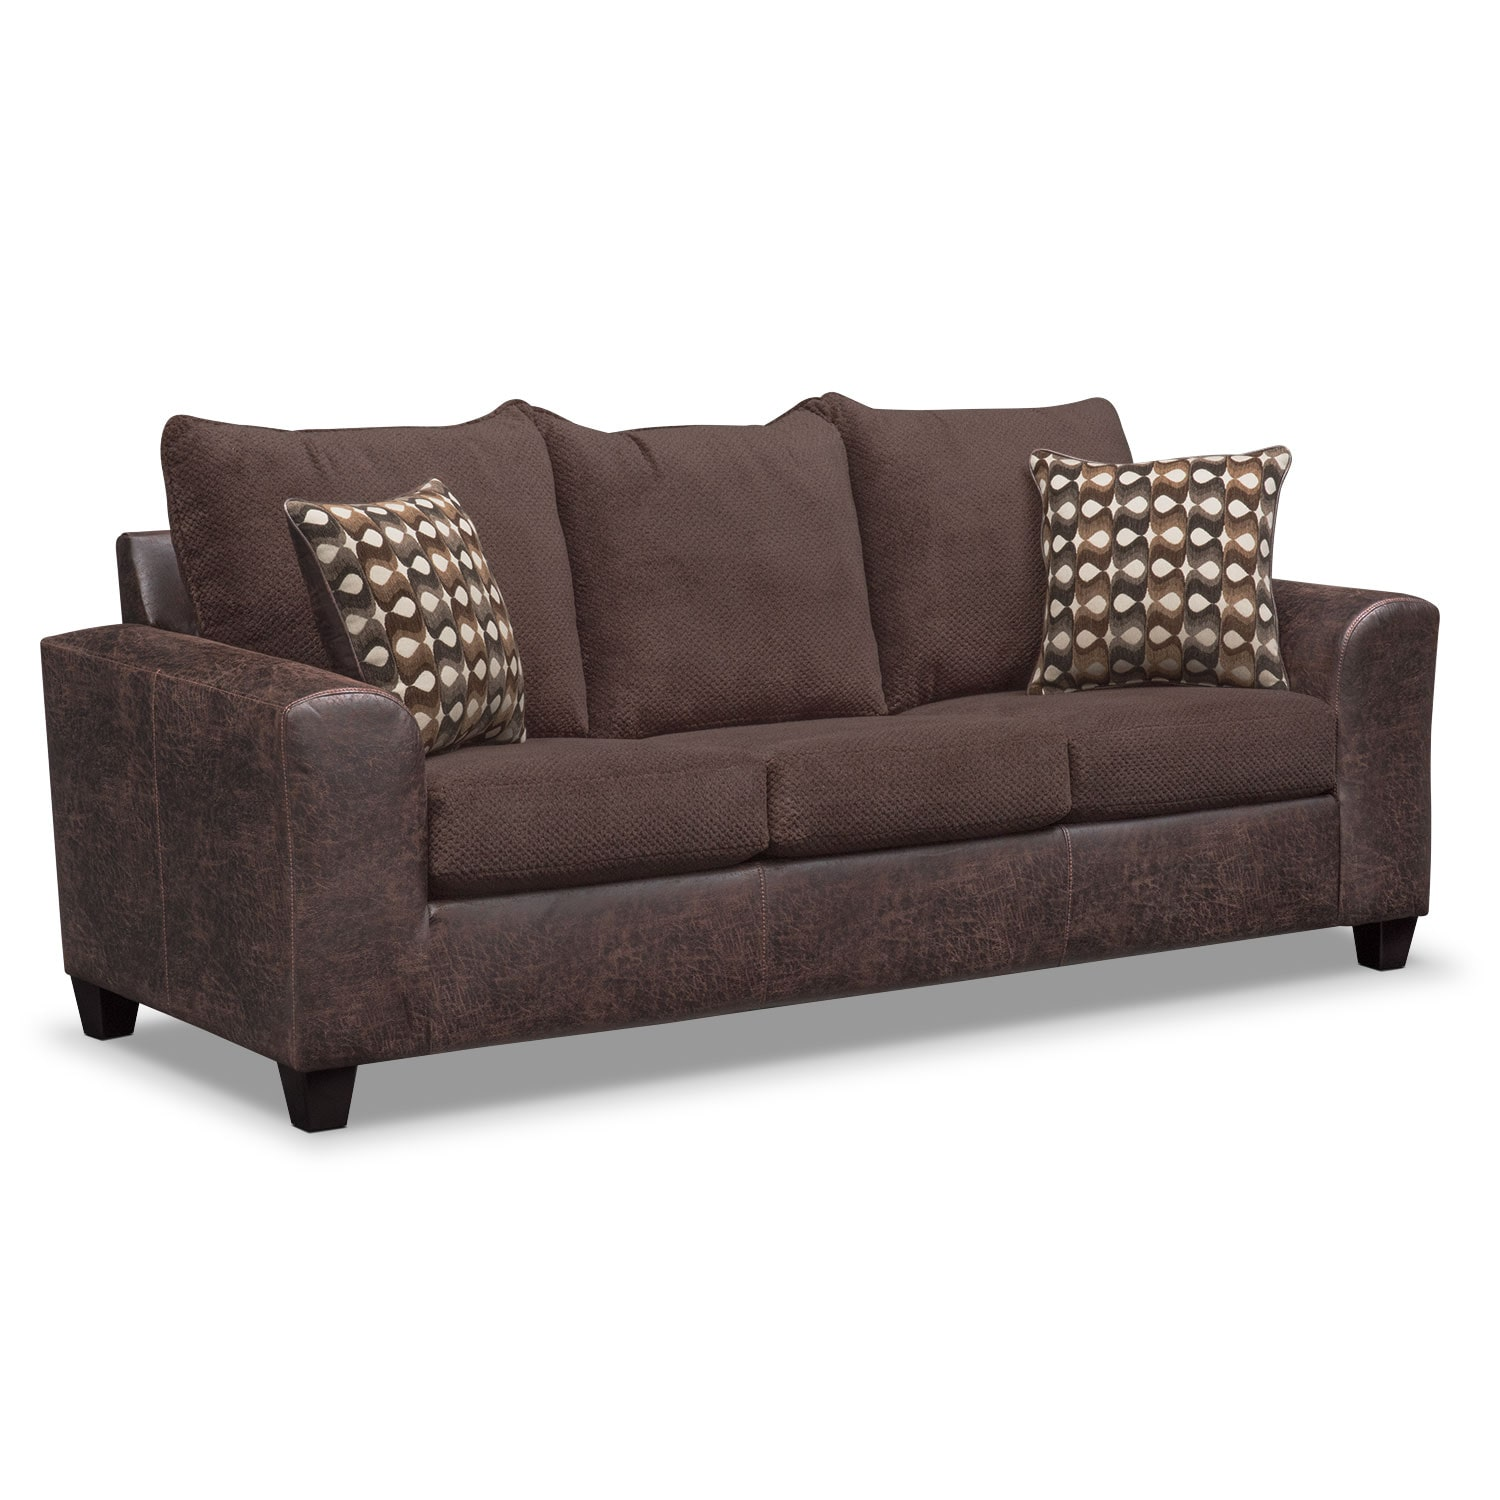 Brando queen memory foam sleeper sofa and loveseat set for Sectional sofa with recliner and queen sleeper